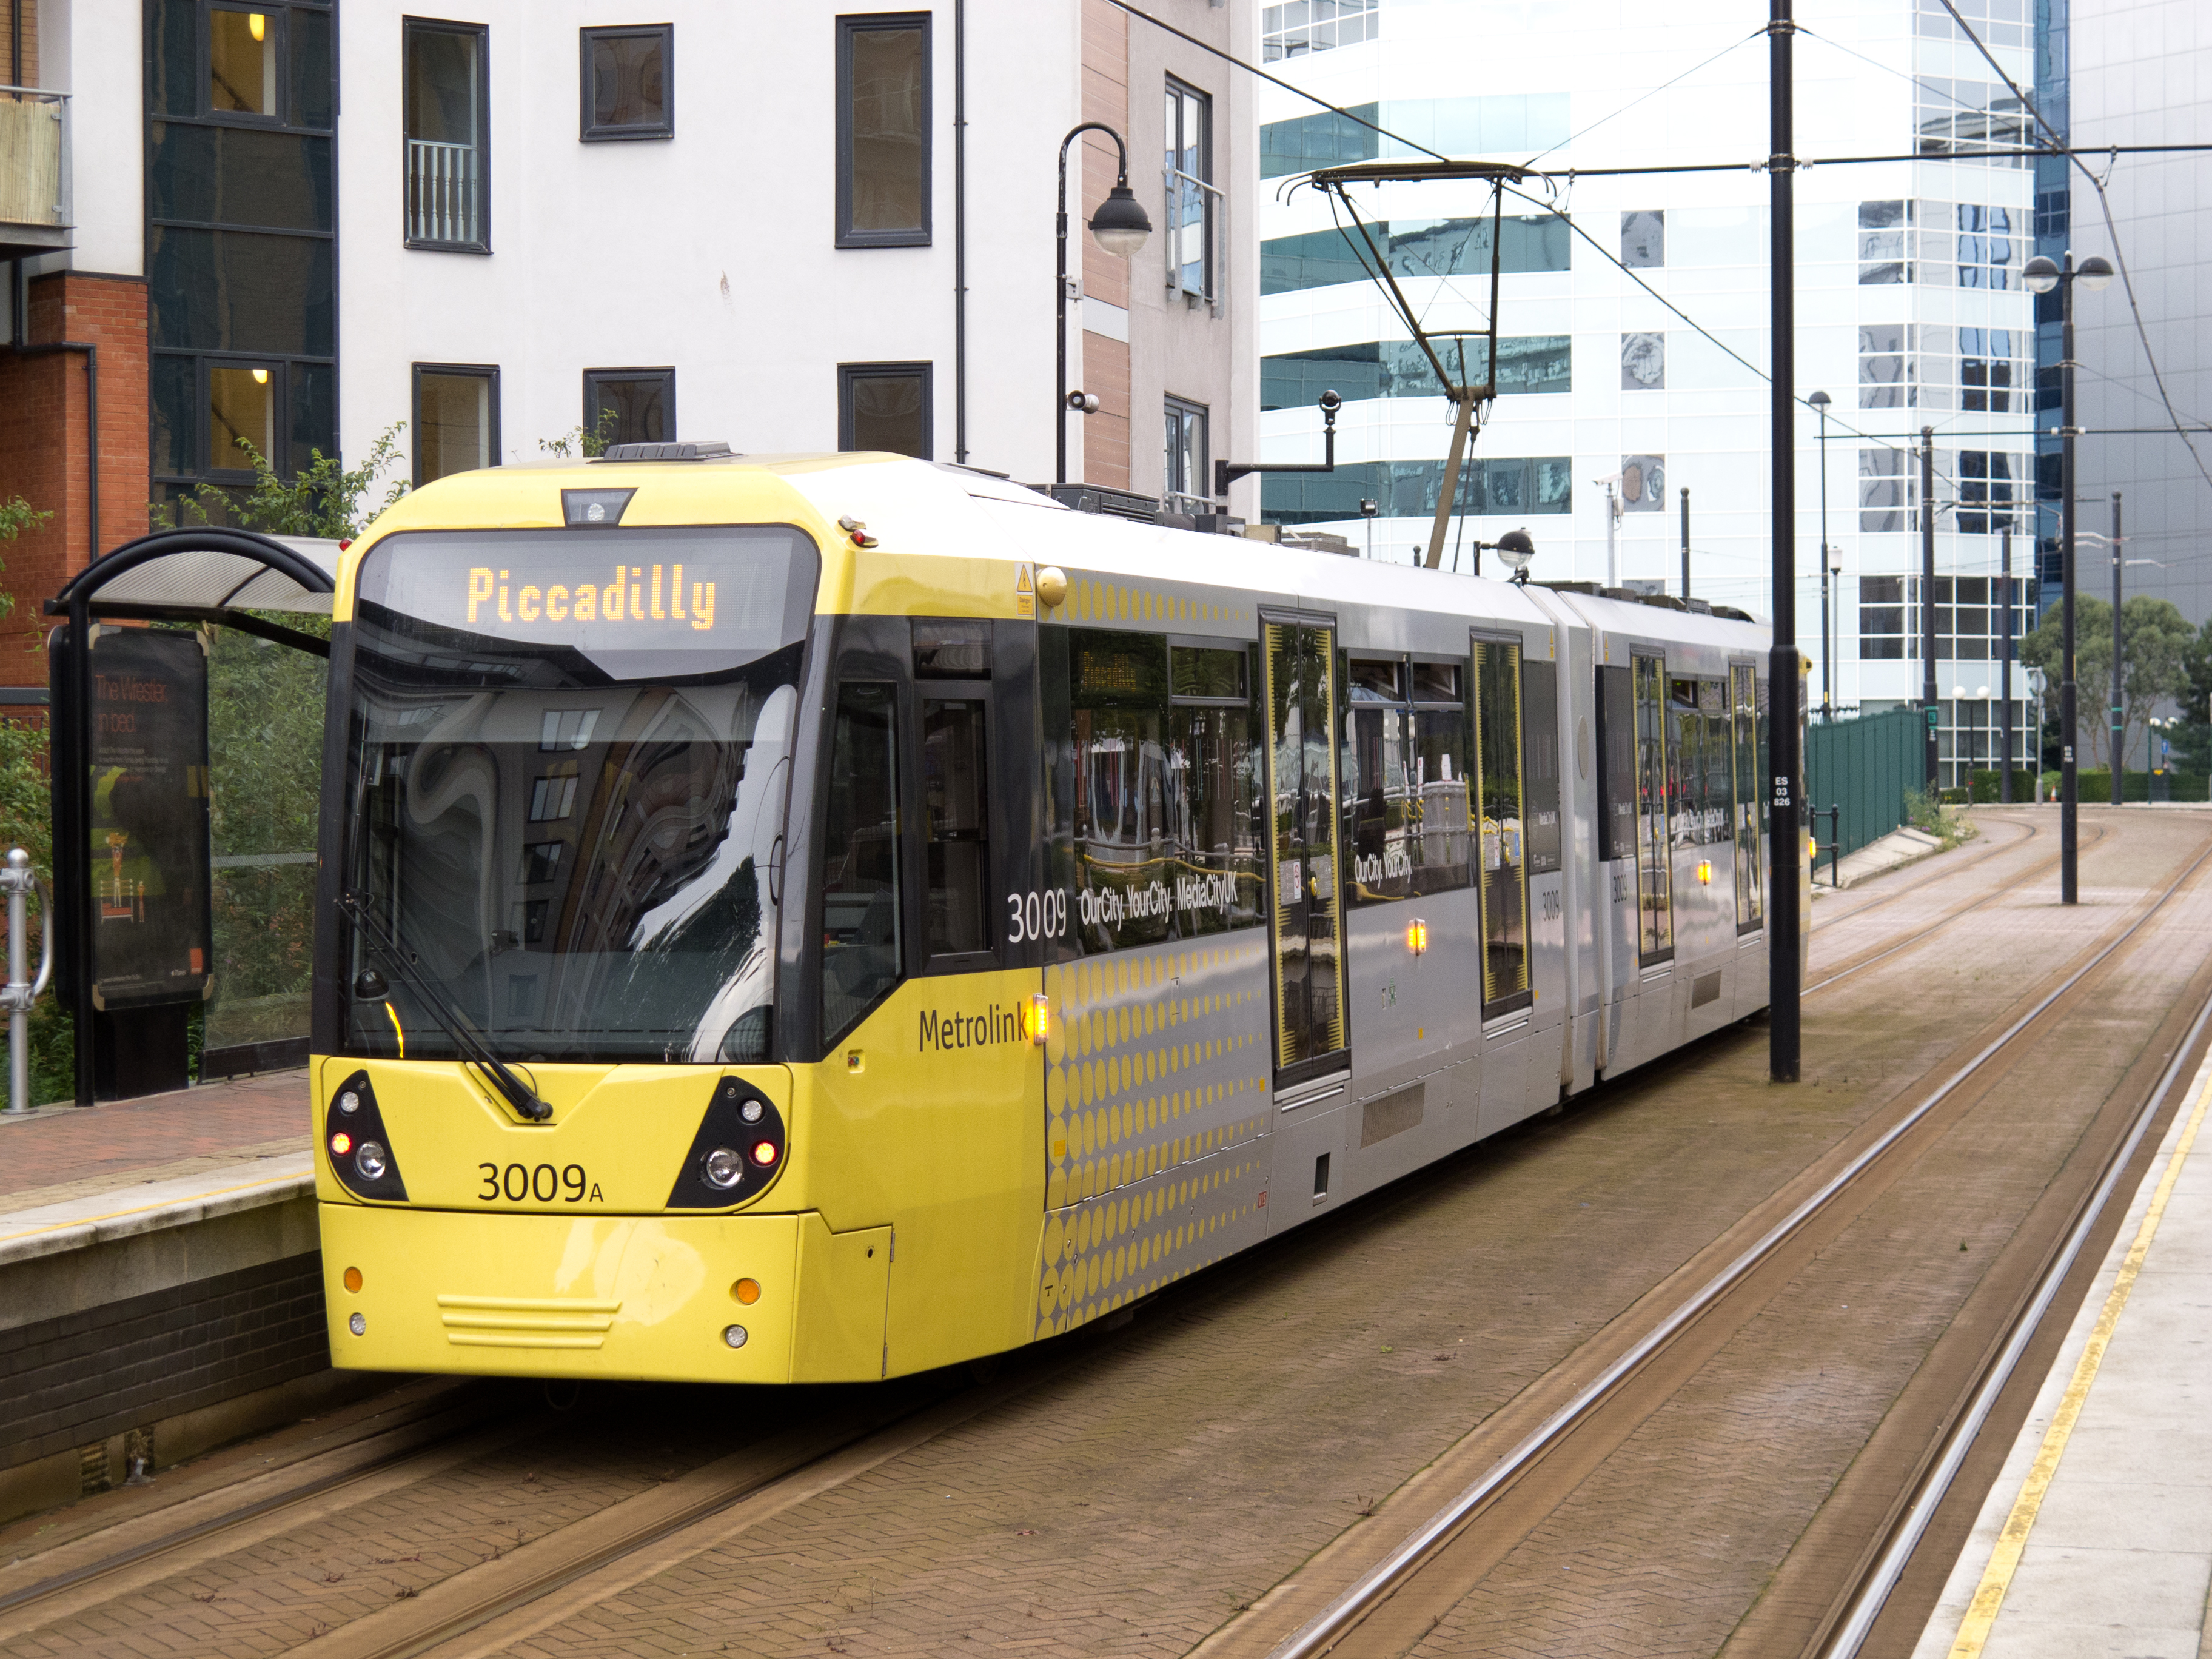 File:Greater Manchester Metrolink - tram 3009A.jpg - Wikimedia Commons